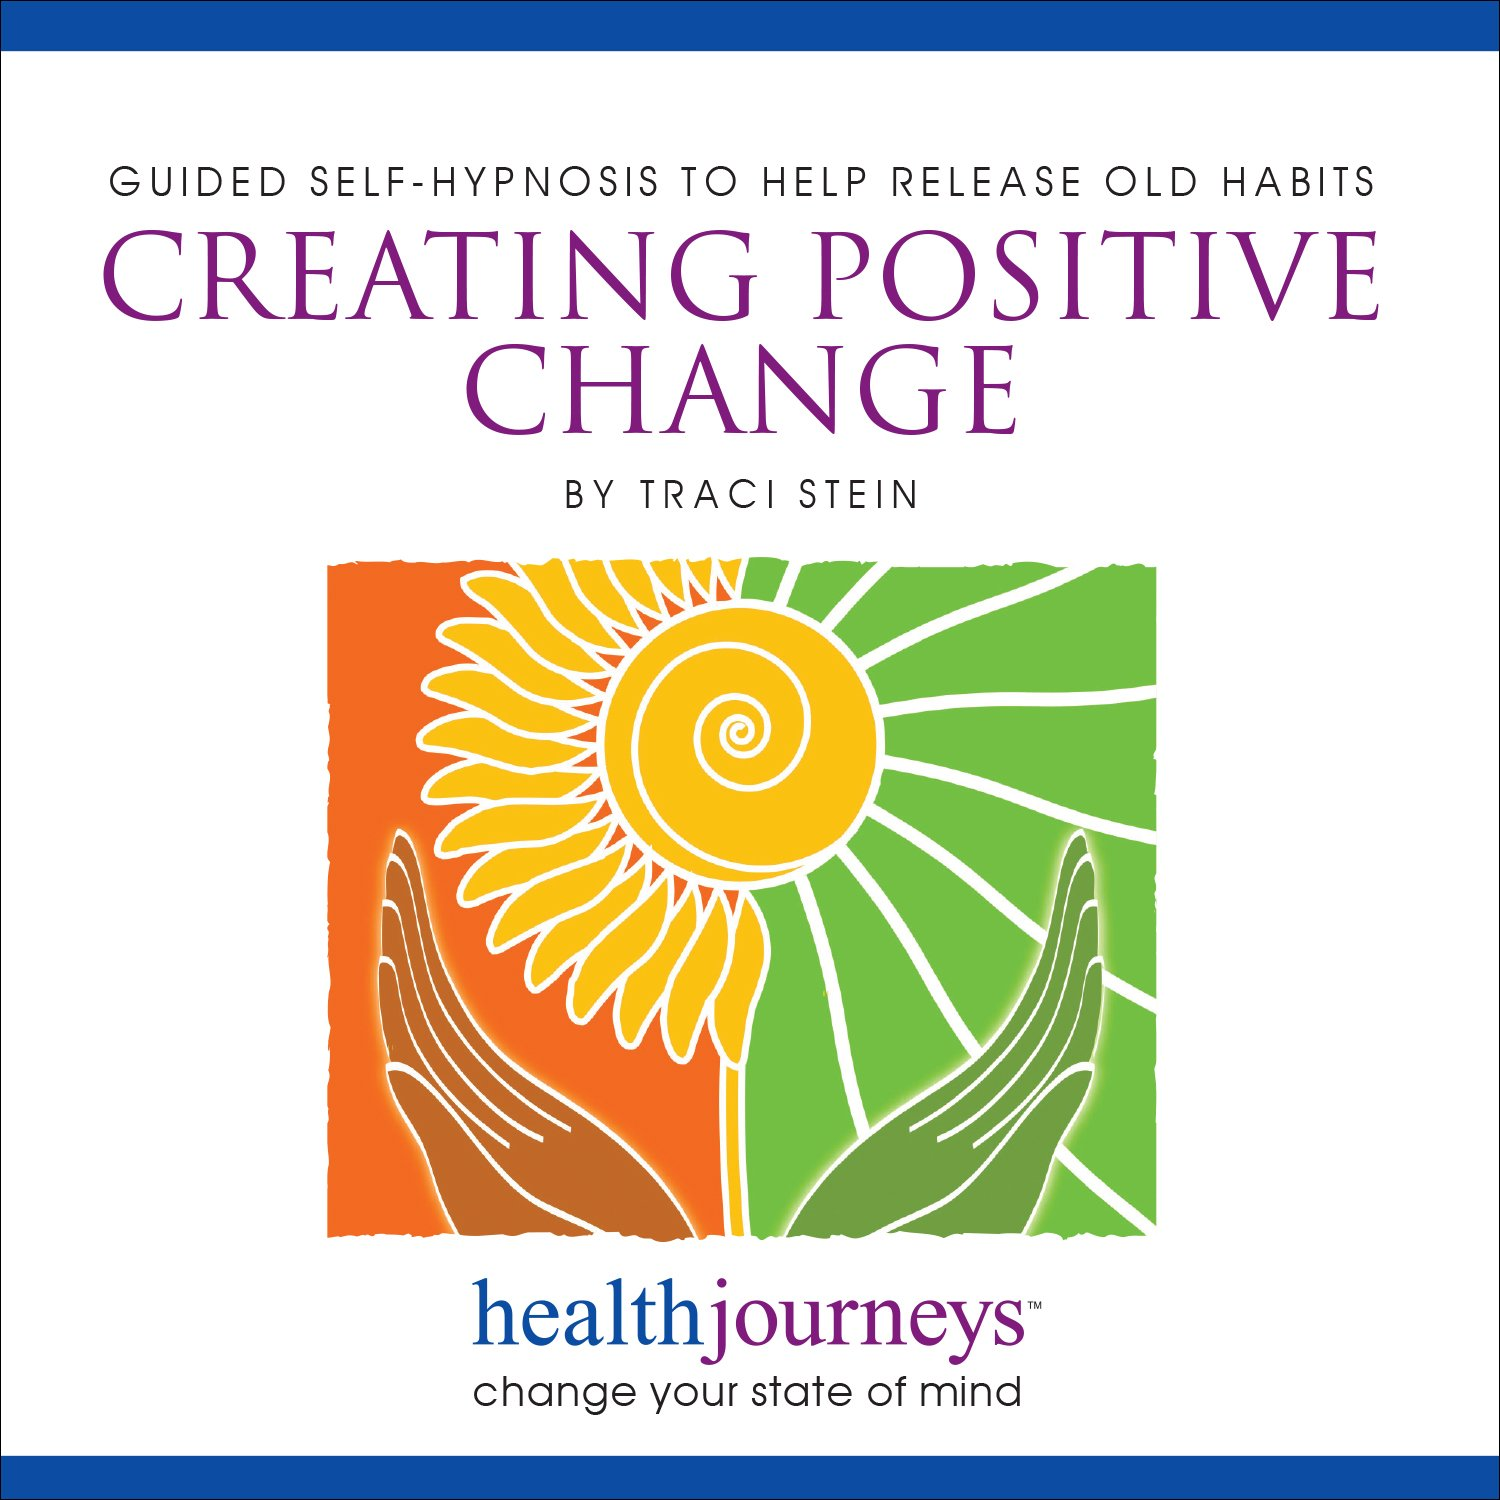 Meditations to Help Create Positive Change, Reverse Unwanted, Habitutal Attitudes and Behaviors with Healing Words and Soothing Music by Belleruth Naparstek from Health Journeys